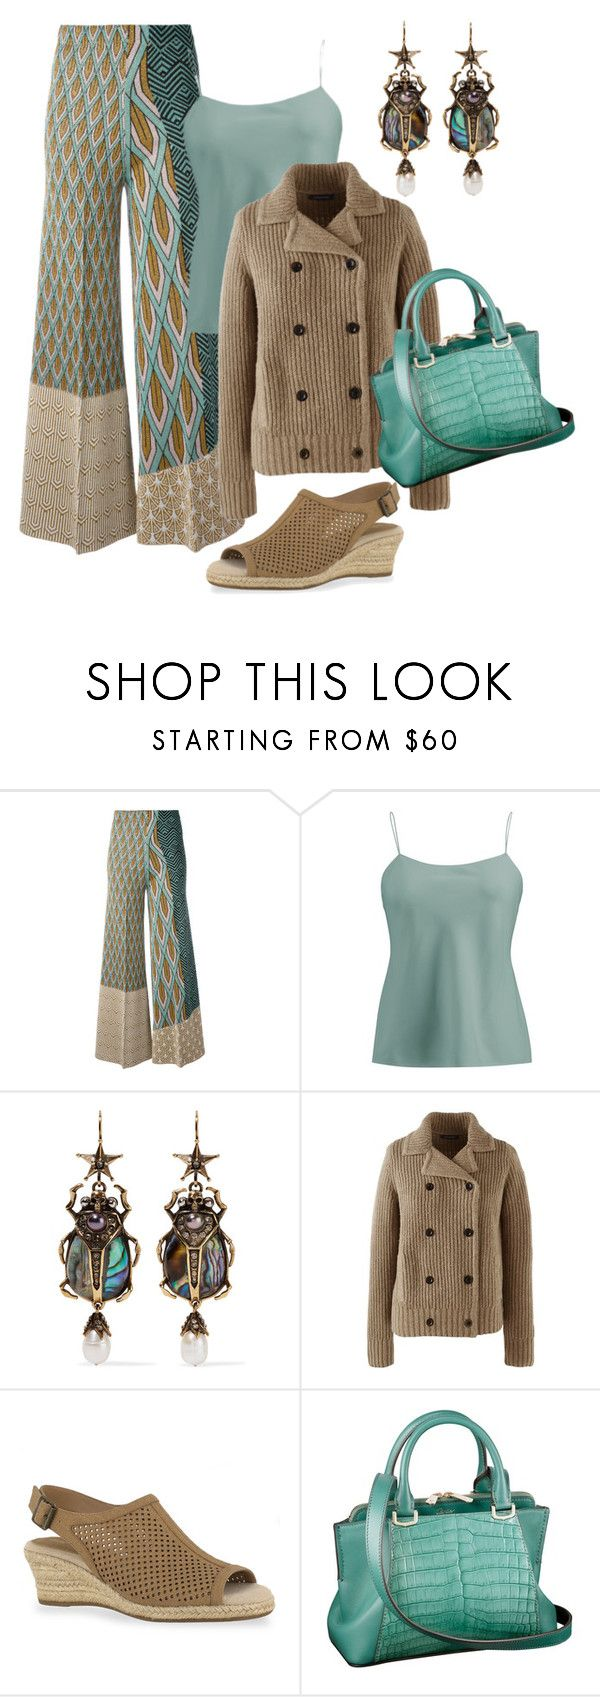 """Brown & Teal"" by farradaymg ❤ liked on Polyvore featuring Circus Hotel, Ralph Lauren Collection, Alexander McQueen, Lands' End, Easy Street and Cartier"